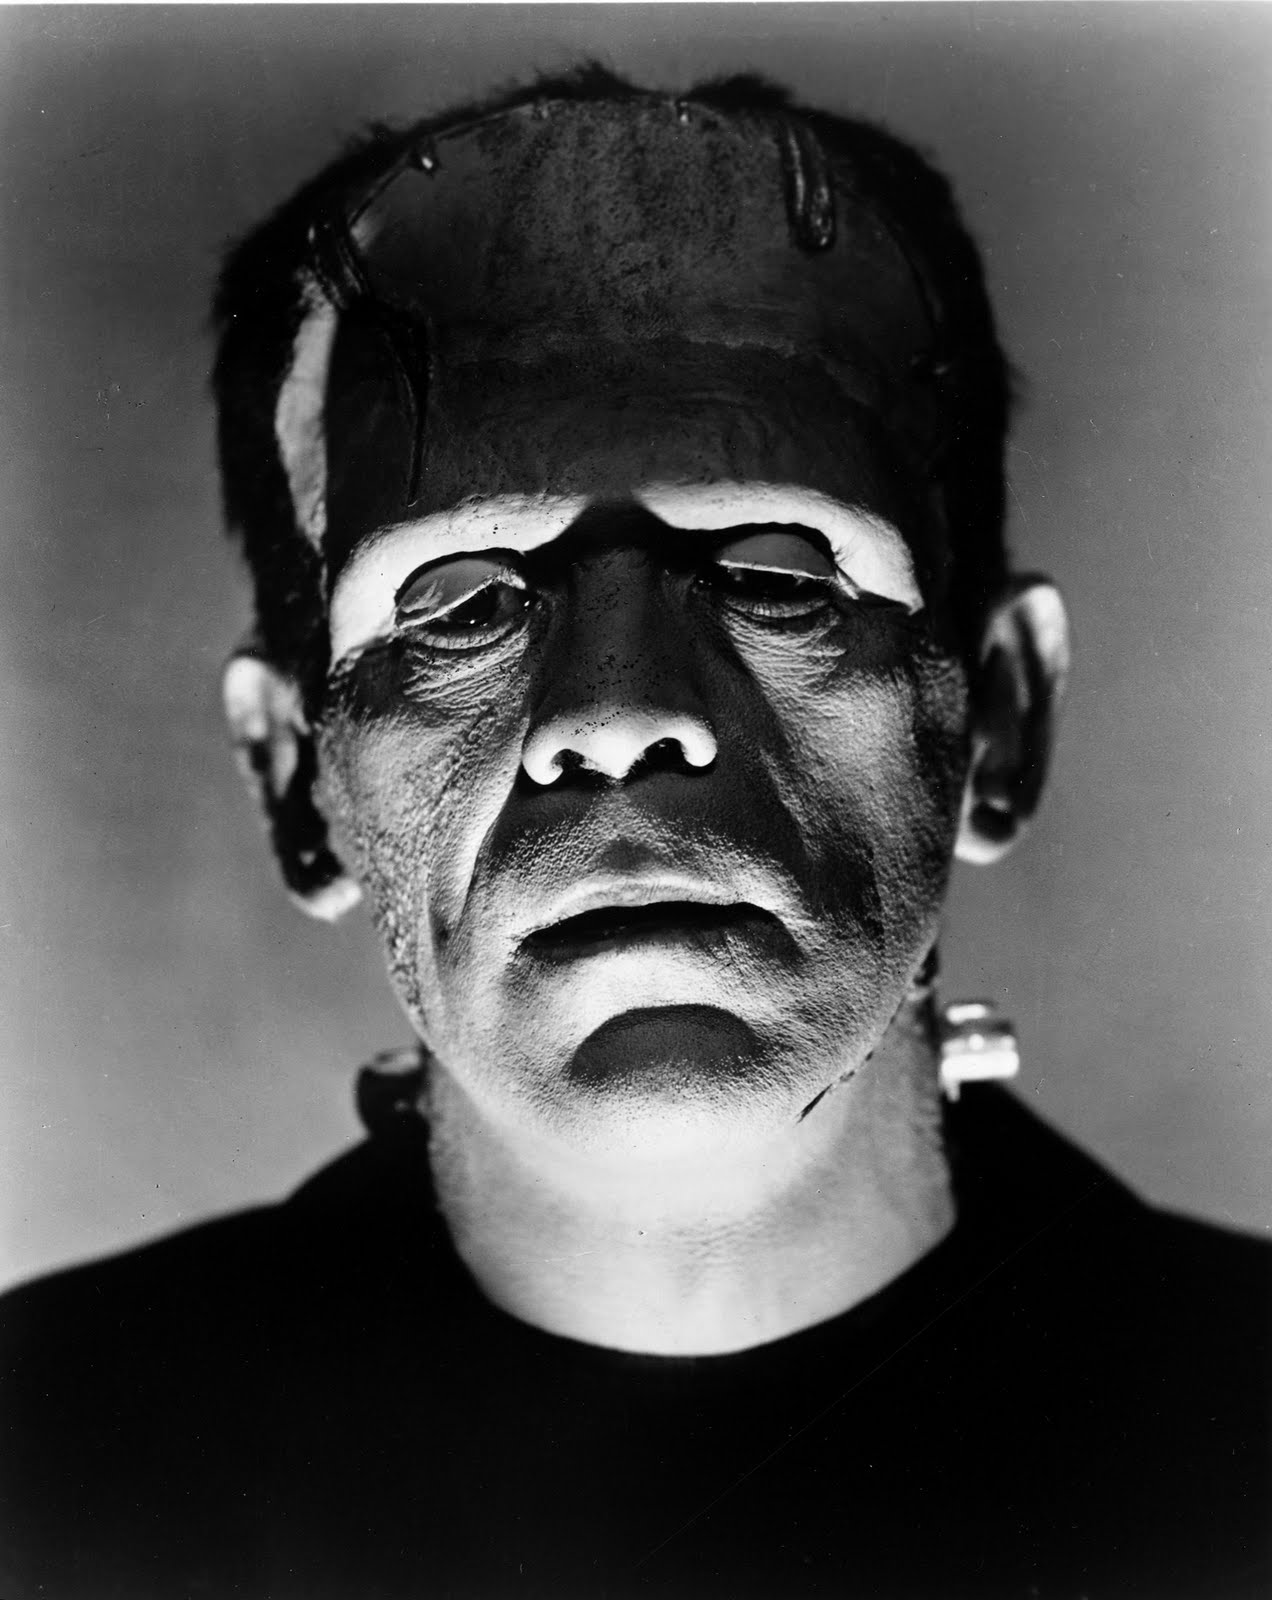 an analysis of the society in the story of frankenstein by mary shelley Struggling with mary shelley's frankenstein check out our thorough summary and analysis of this literary masterpiece the real story of frankenstein is way.